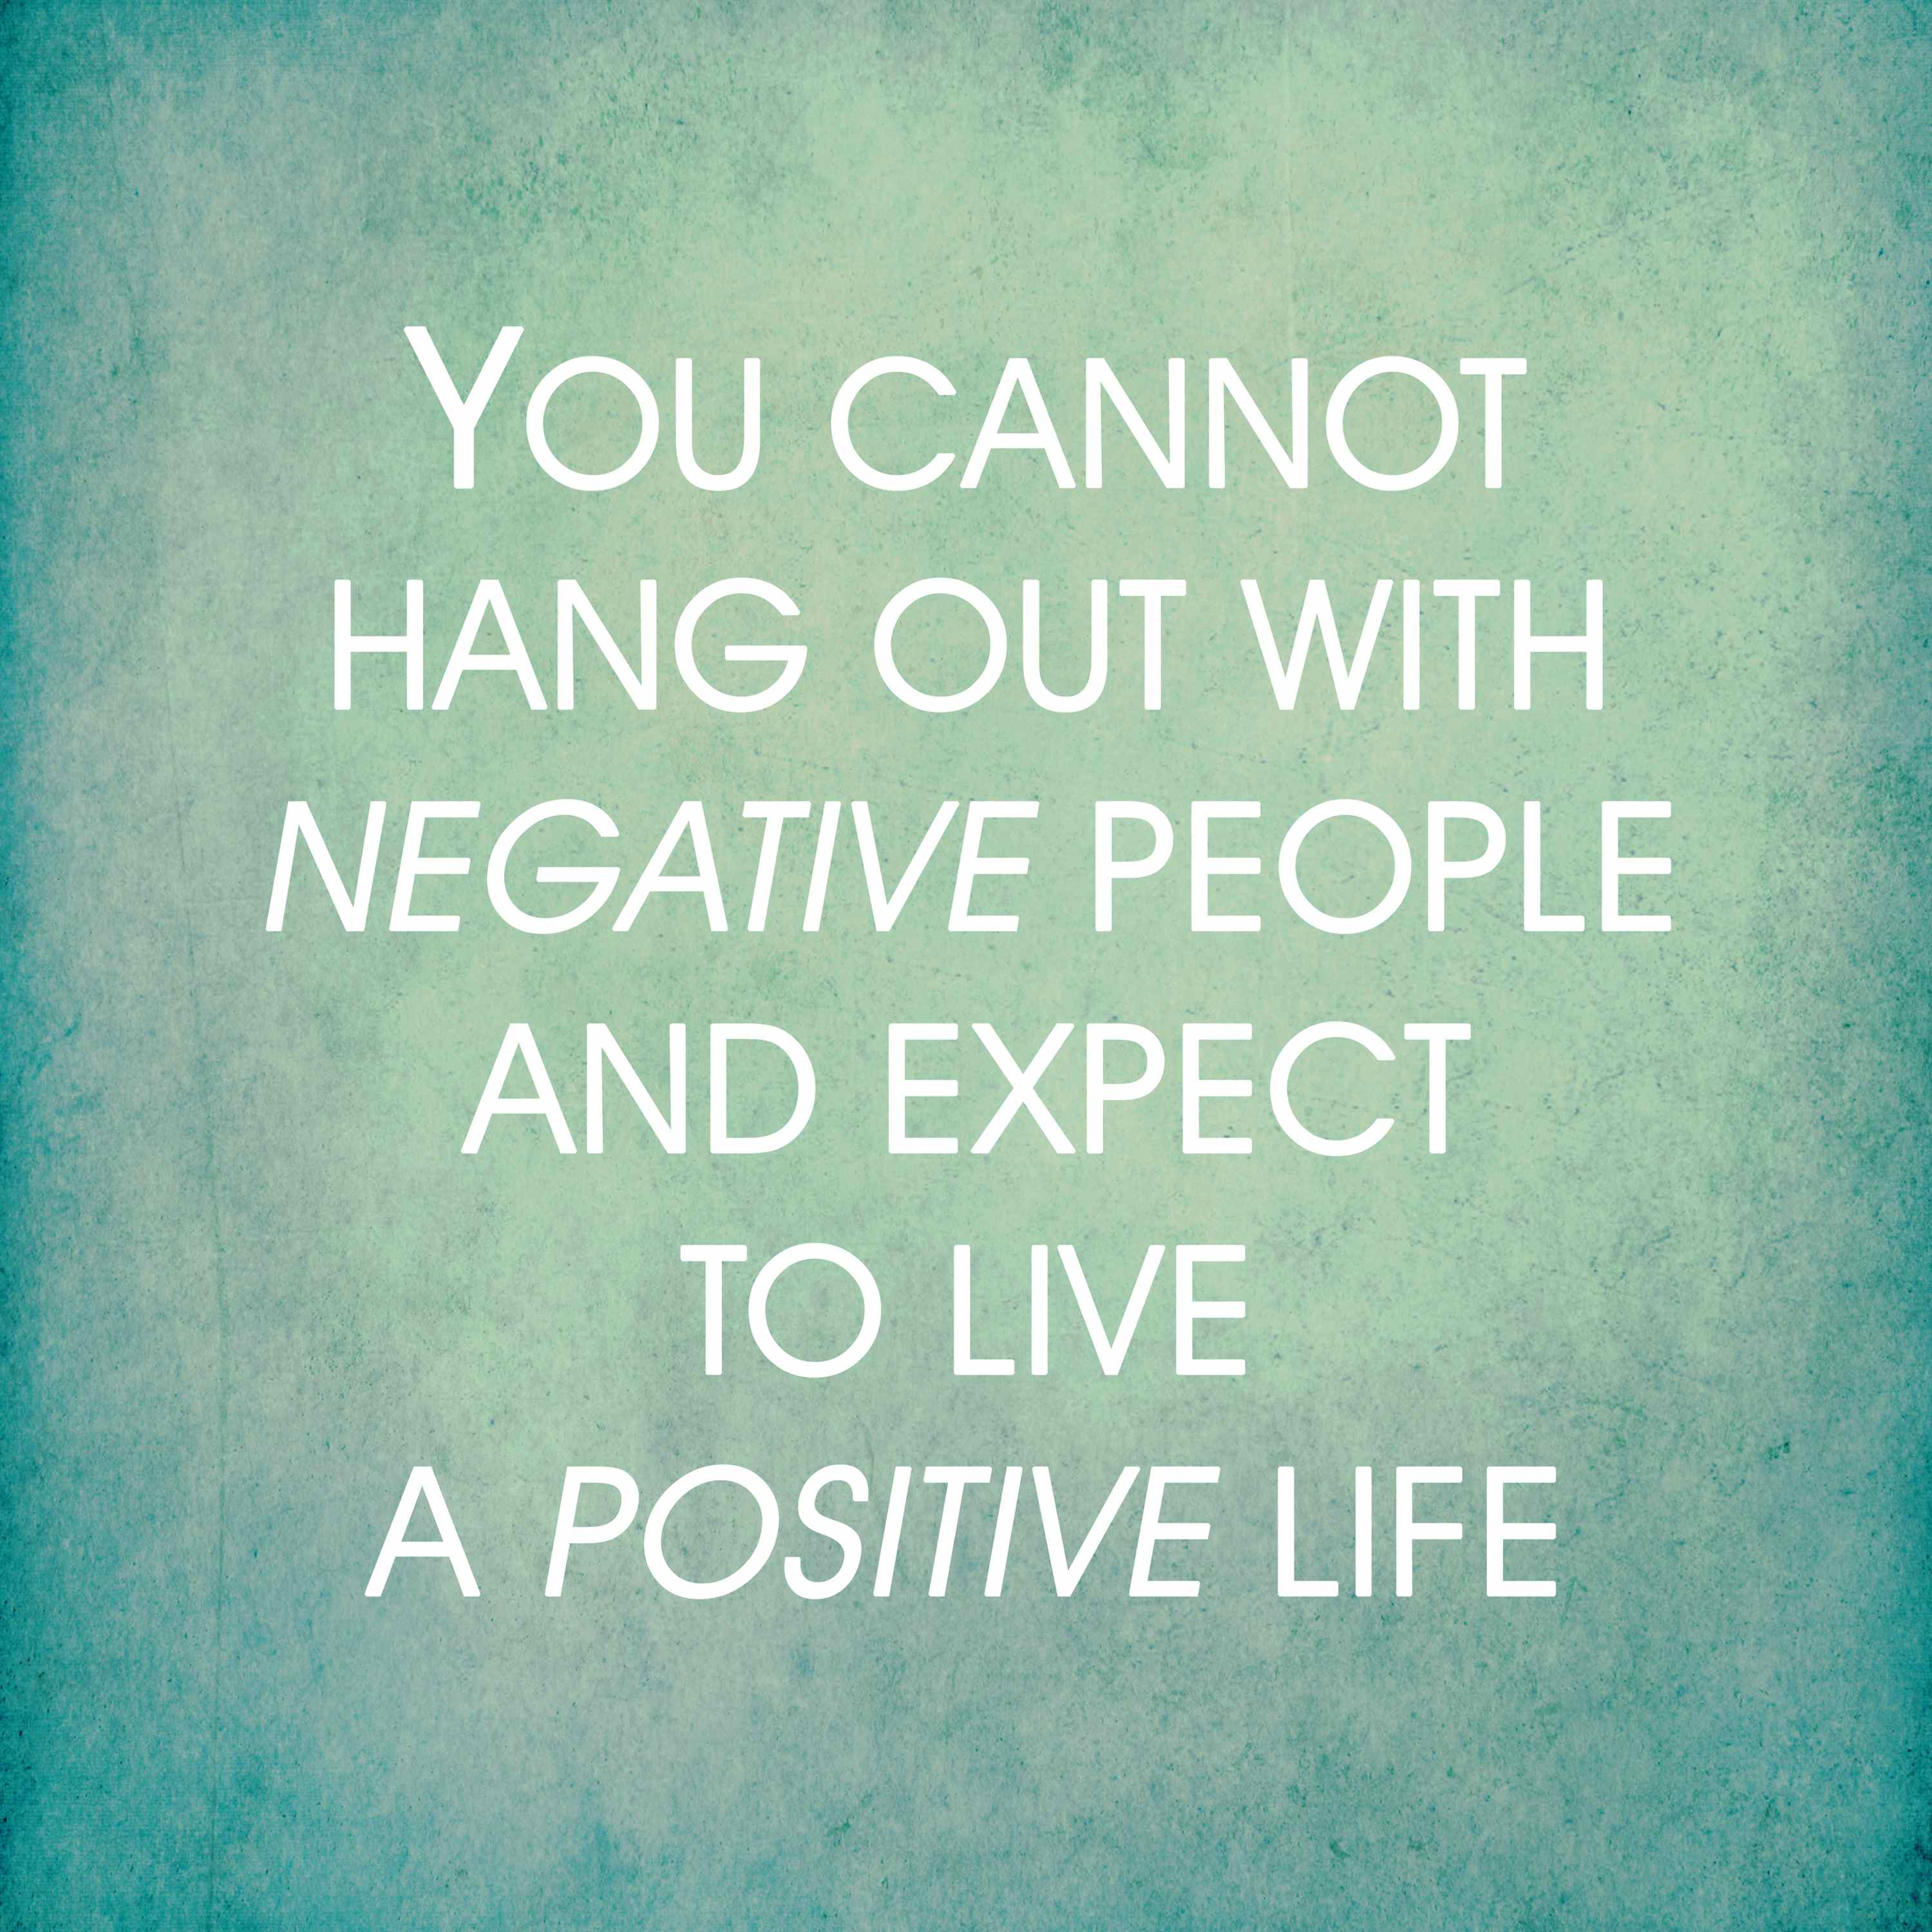 Inspirational Quotes About Positive: Negative People Quotes About Gossip. QuotesGram